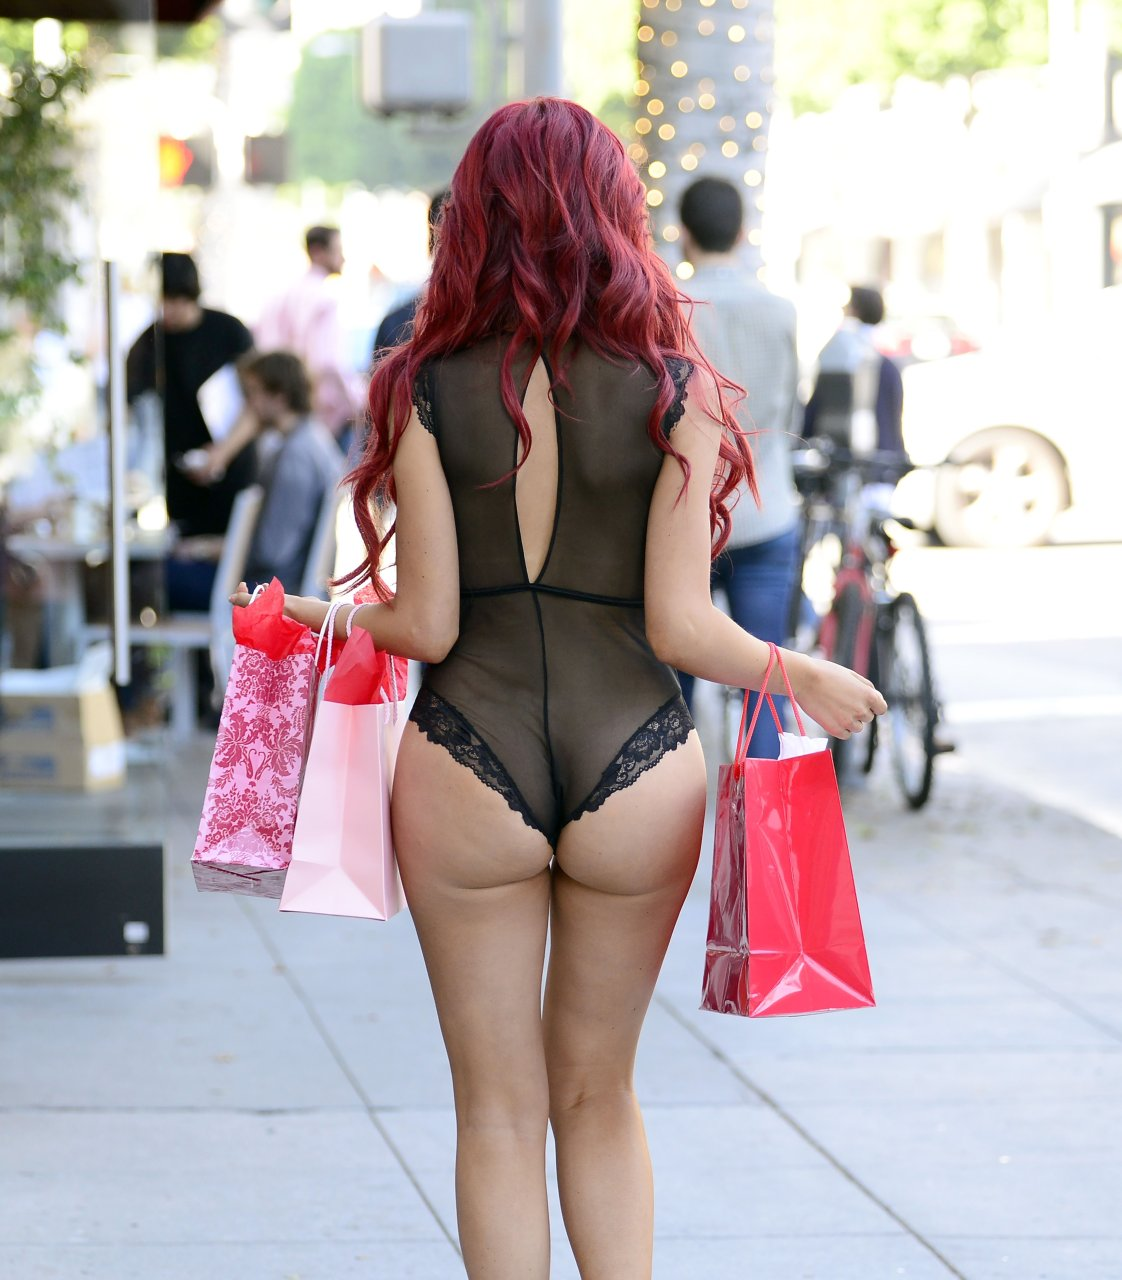 Farrah-Abraham-See-Through-33-The-Fappening-Blog.jpg